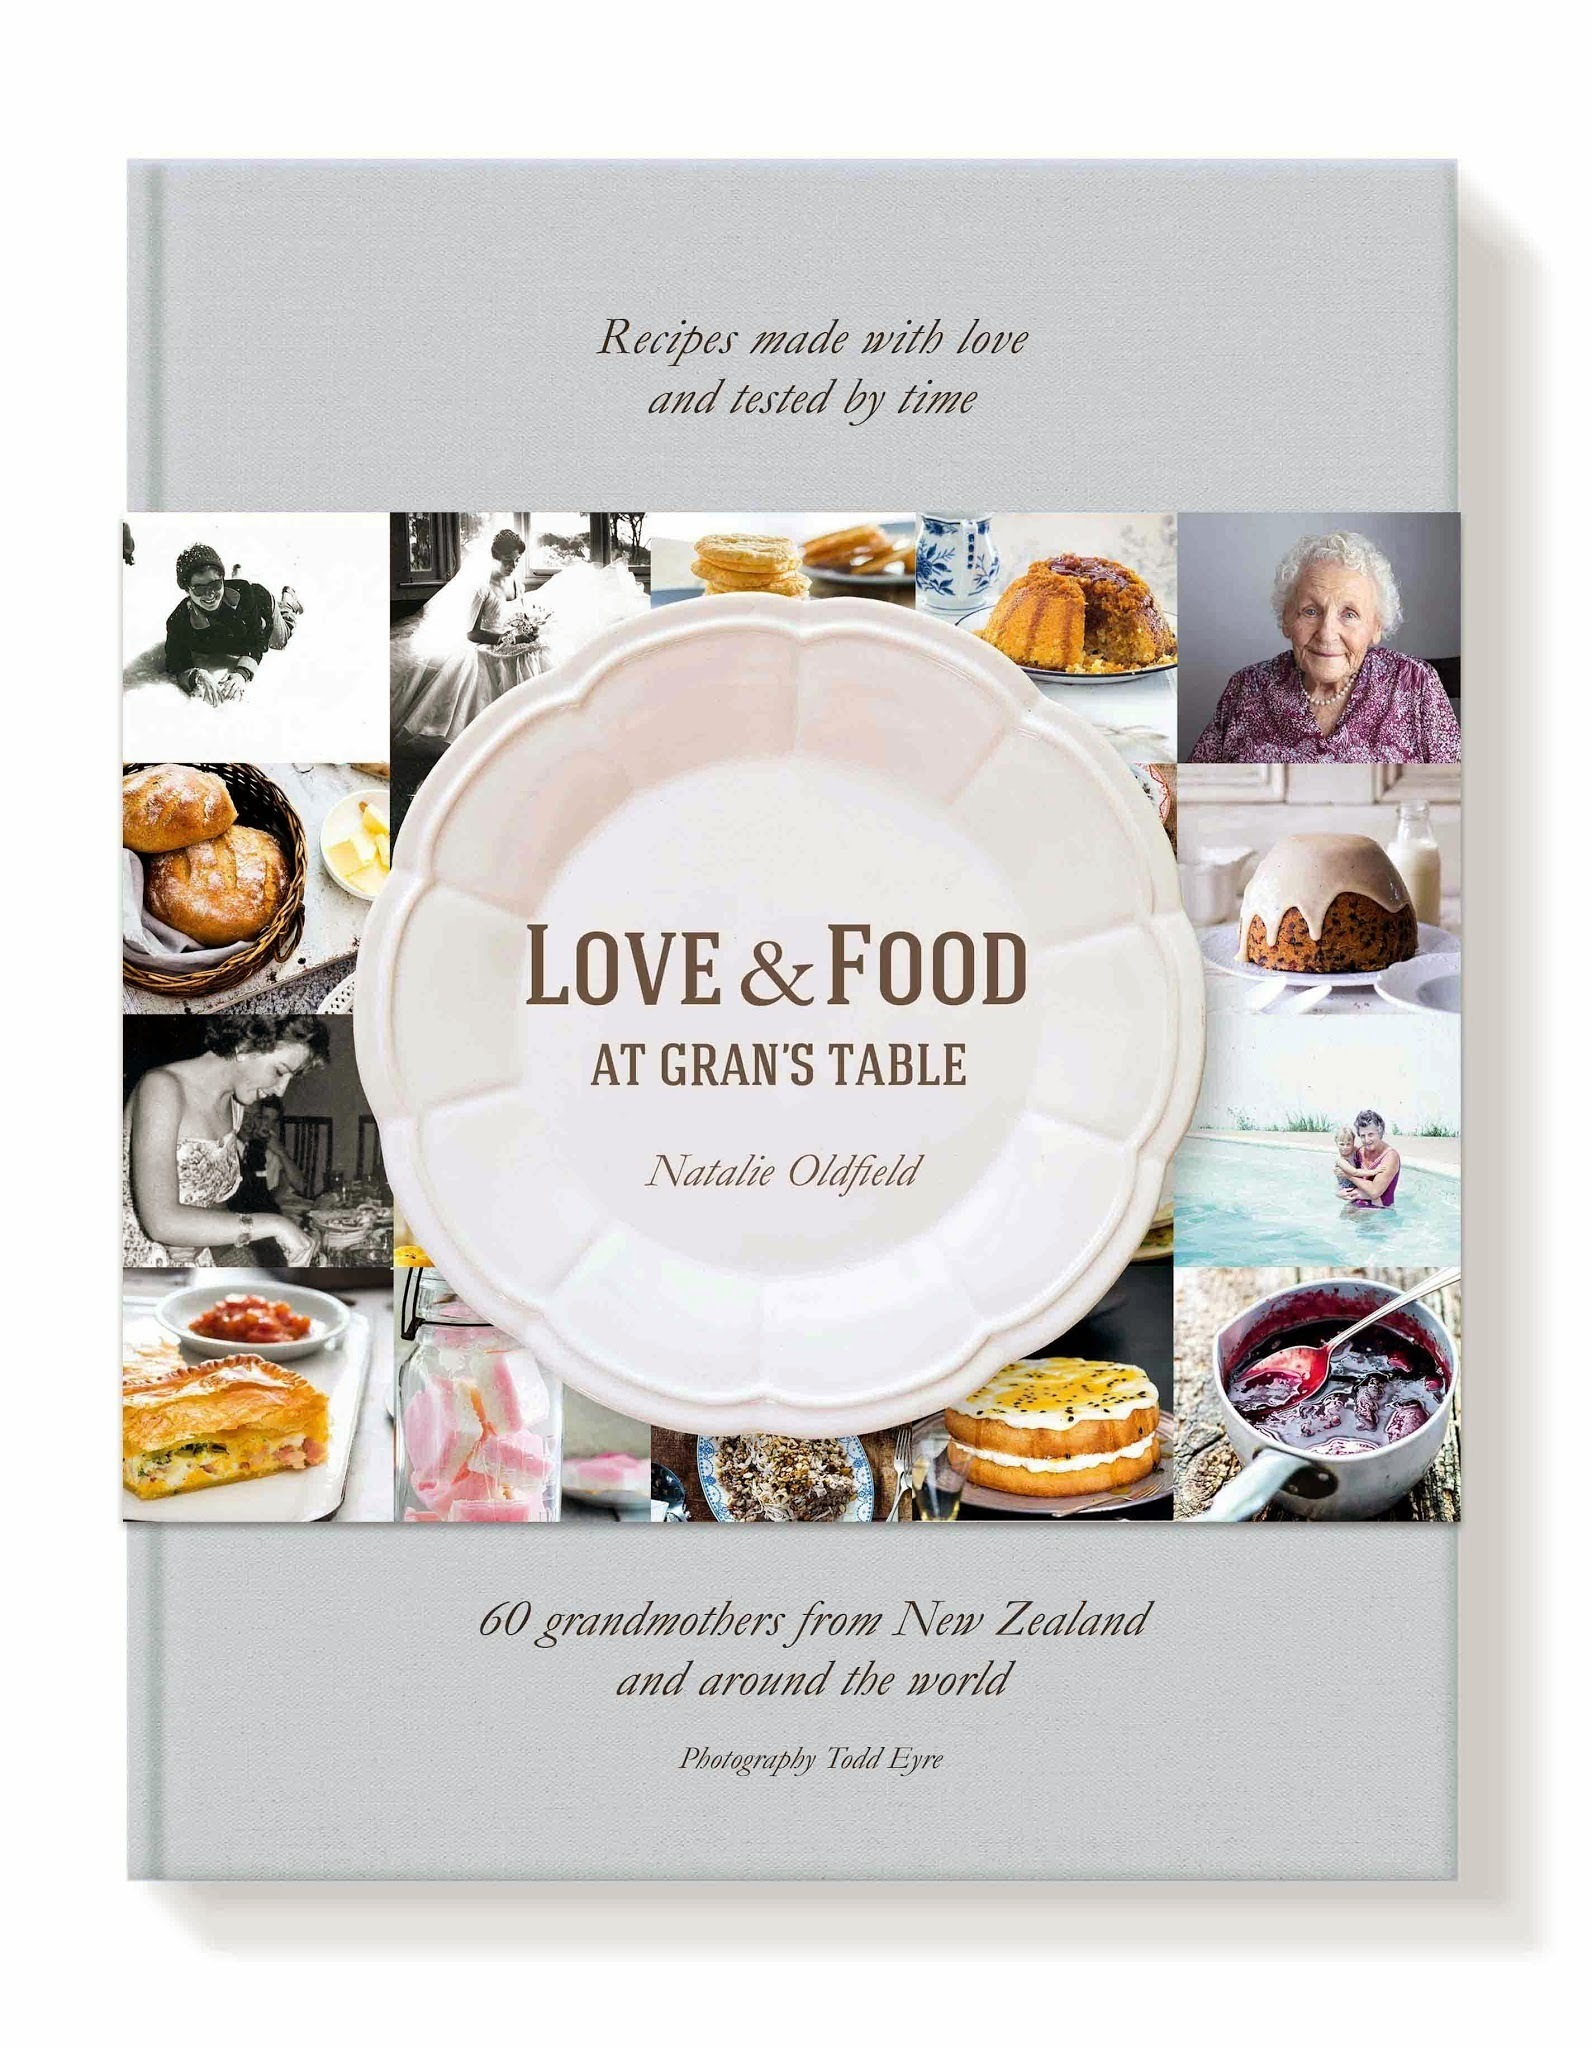 Love & Food at Gran's Table